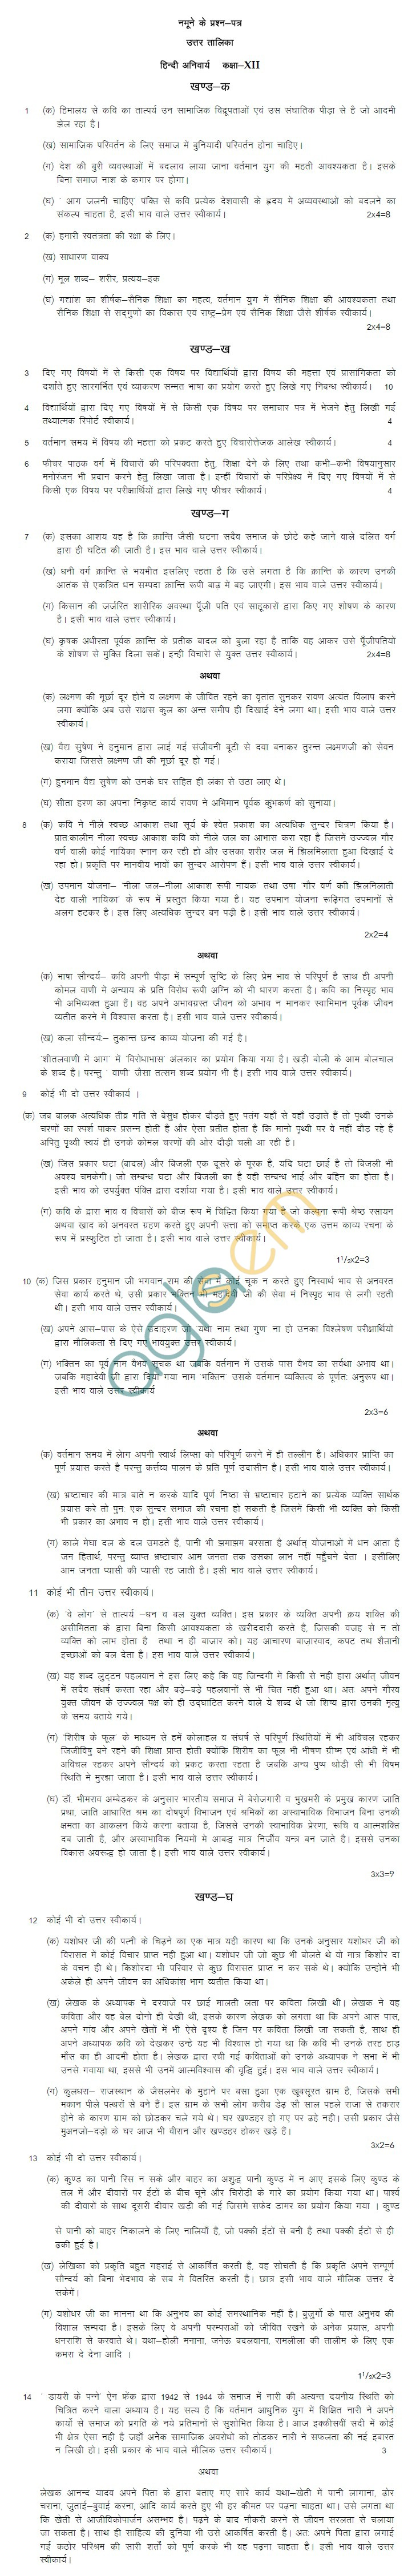 Rajasthan Board Class 12 Hindi Com  Model Question Paper